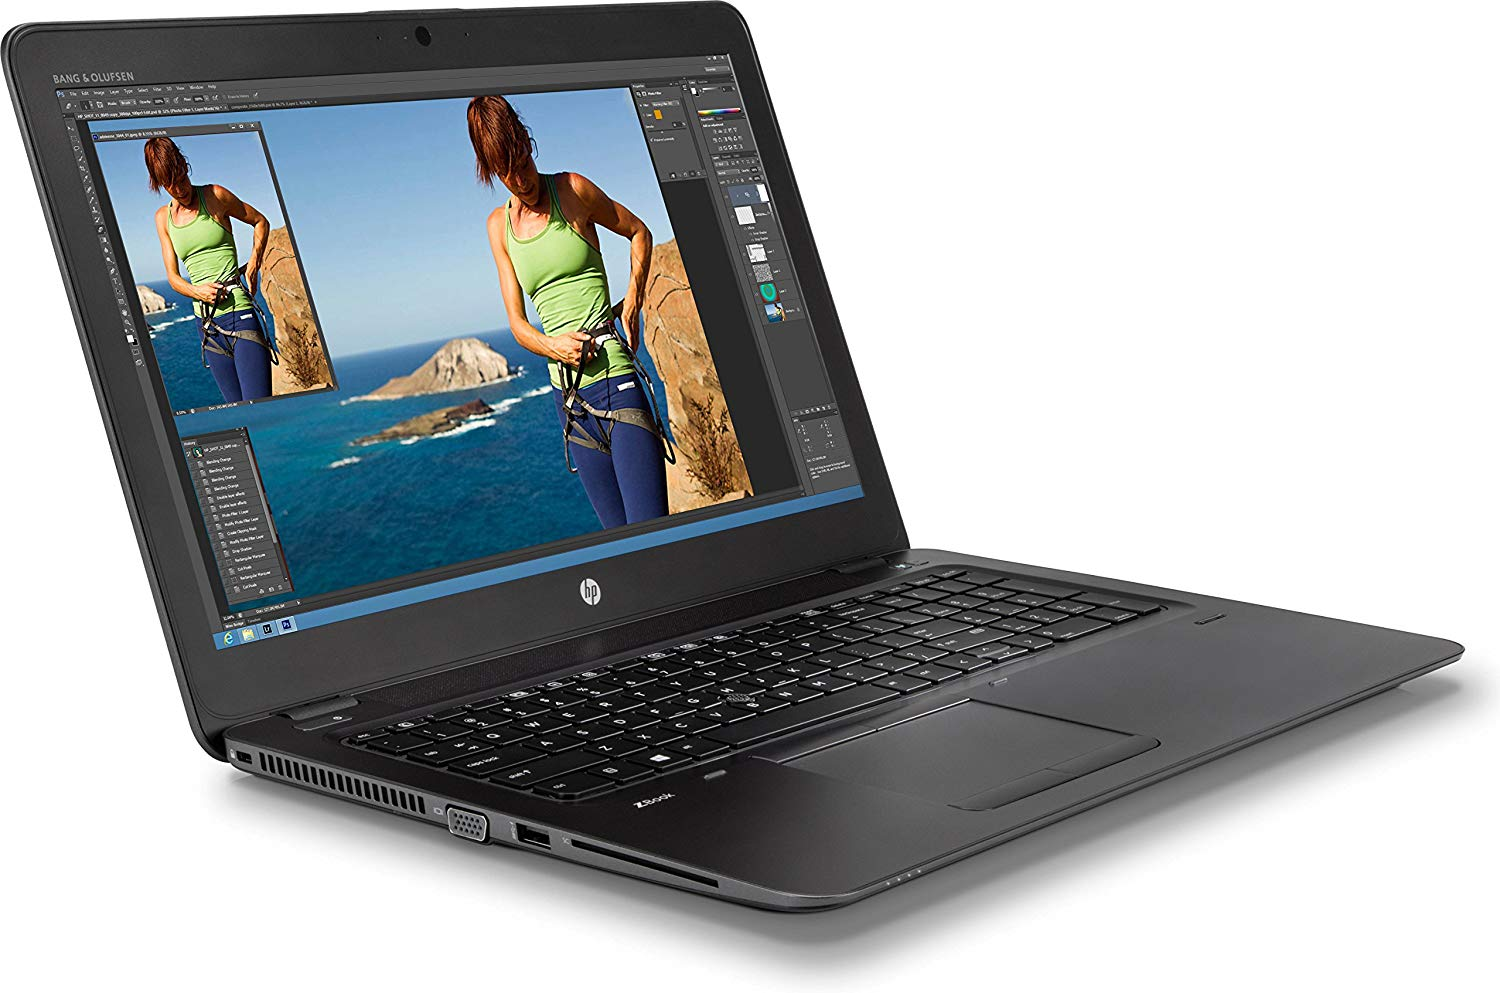 Laptop HP Zbook 15 G3 Core i7-6820HQ/DDR4 16Gb/SSD 256GB/Quadro M1000M